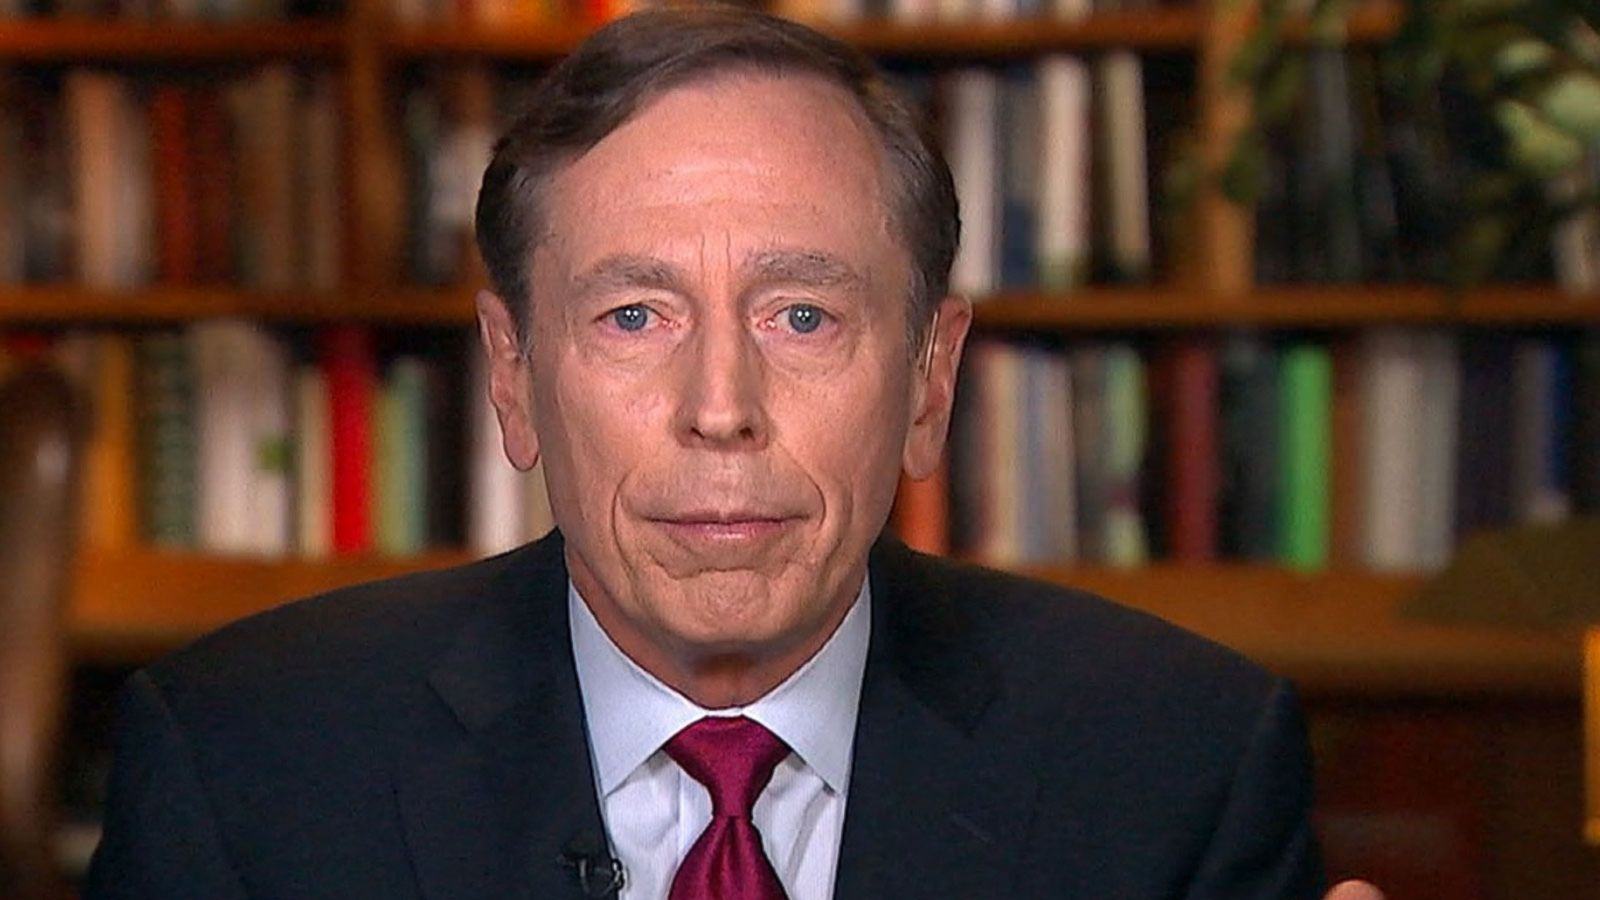 VIDEO: Gen. David Petraeus on Trump's Transition to the White House